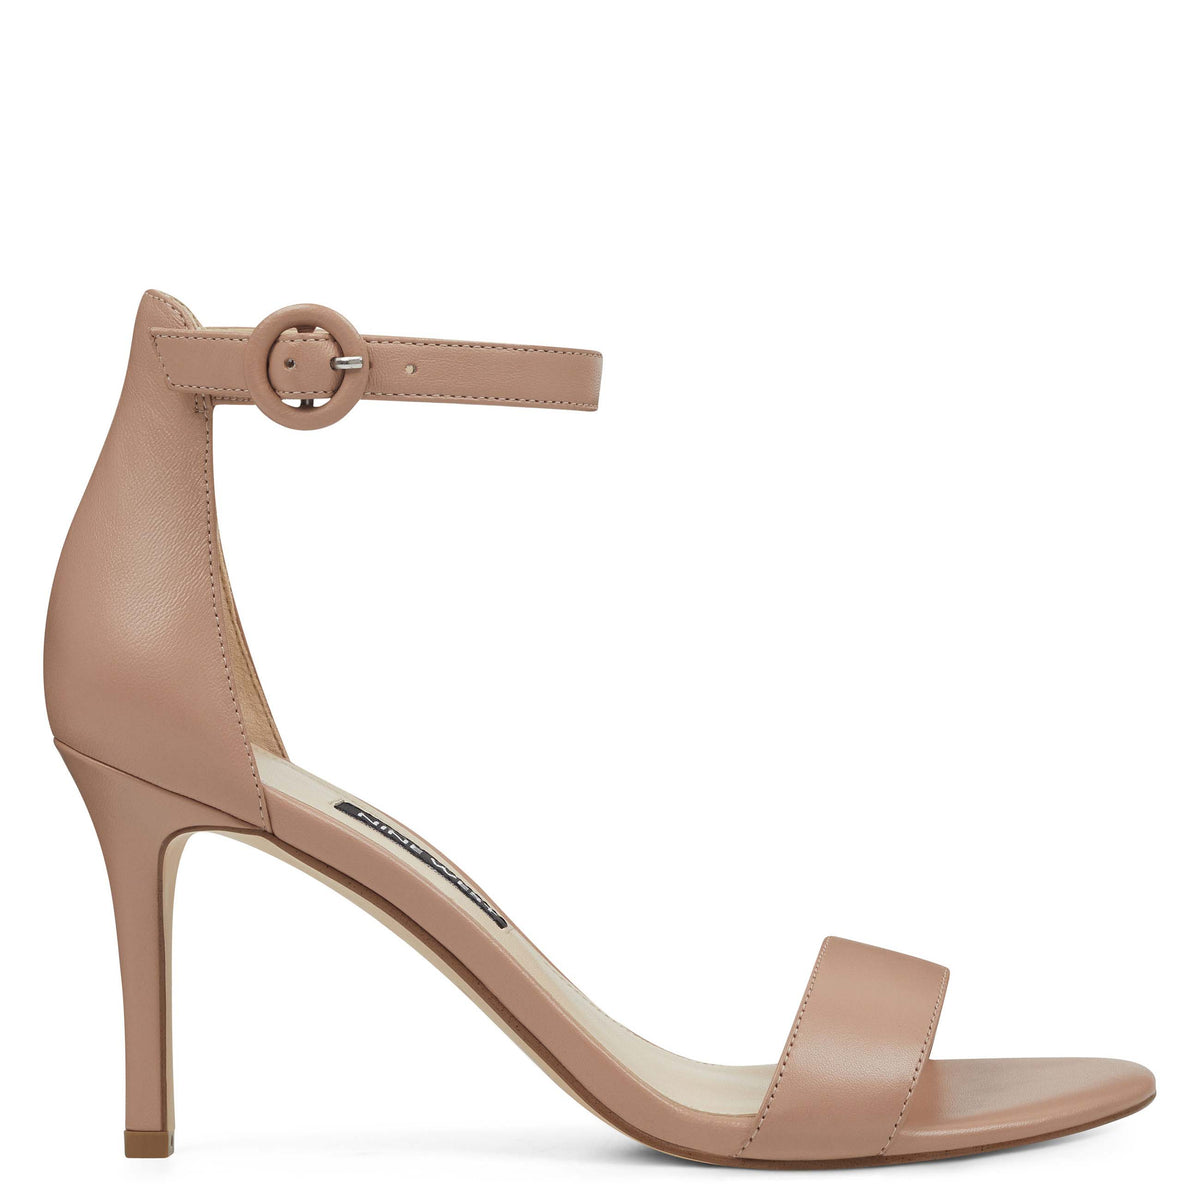 Aission Ankle Strap Sandals